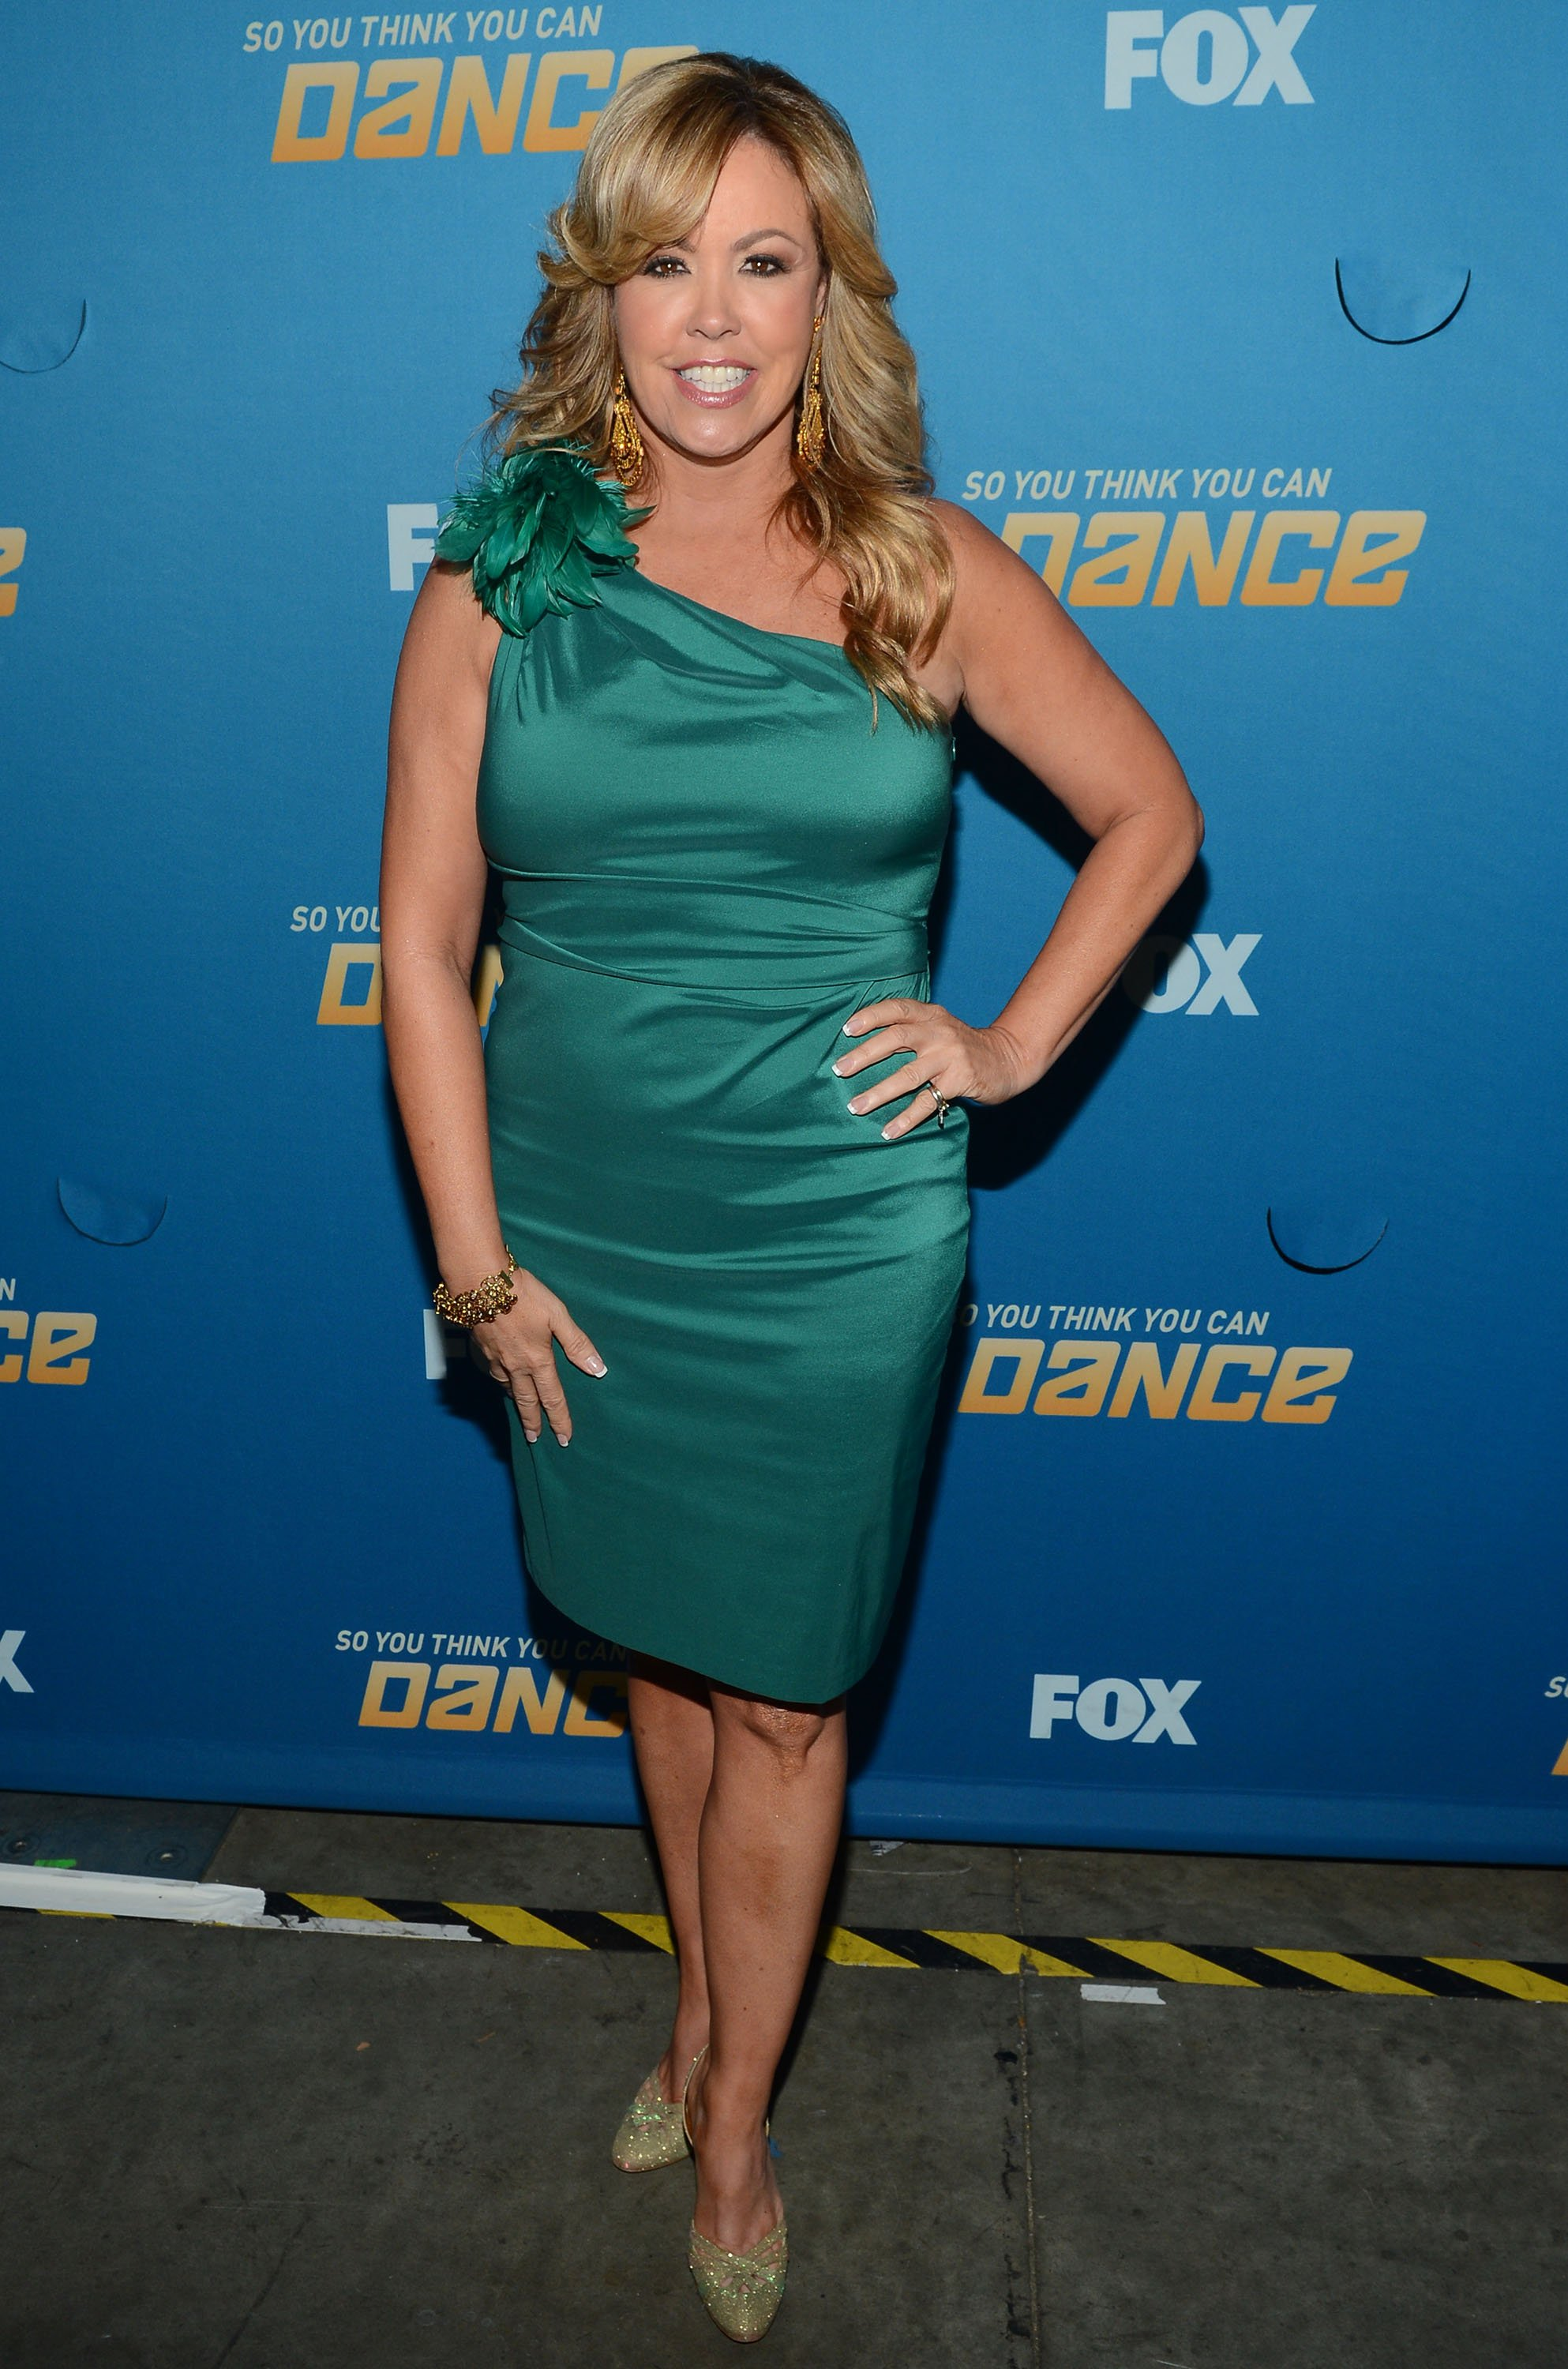 Mary Murphy poses at the 200th episode celebration for 'So You Think You Can Dance' at CBS Television City on June 25, 2012 in Los Angeles